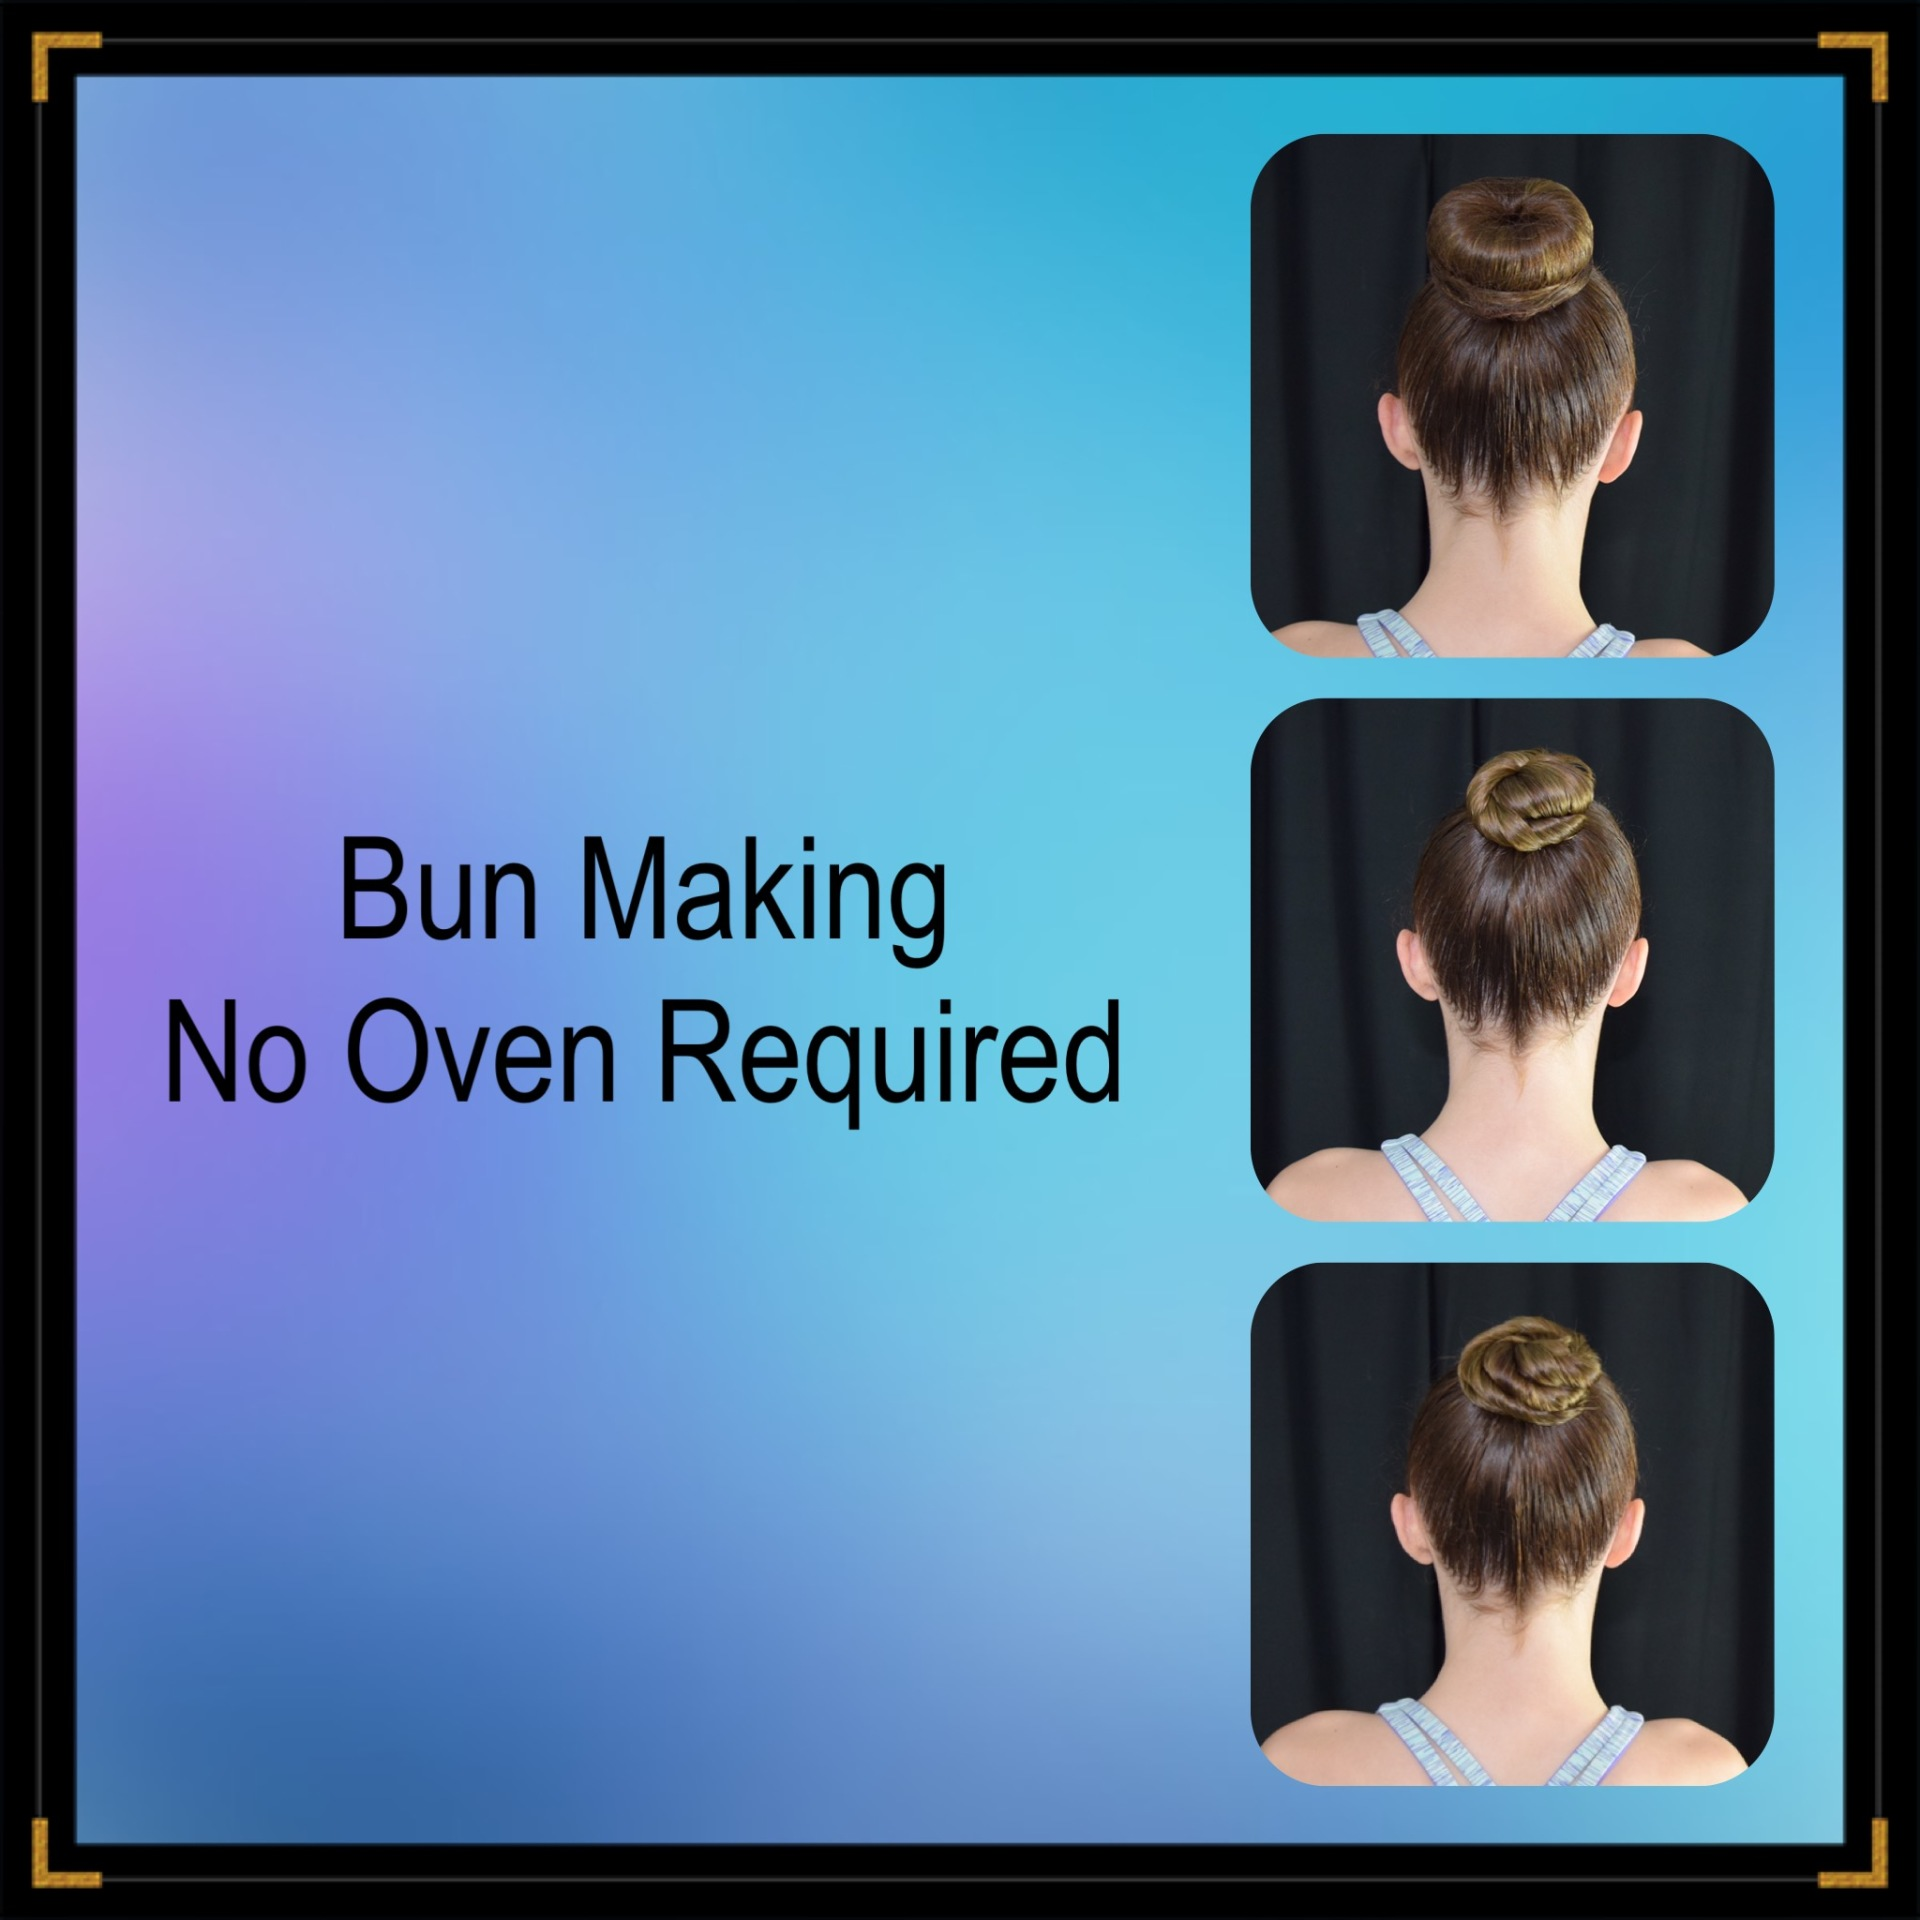 Bun Making - No Oven Required!